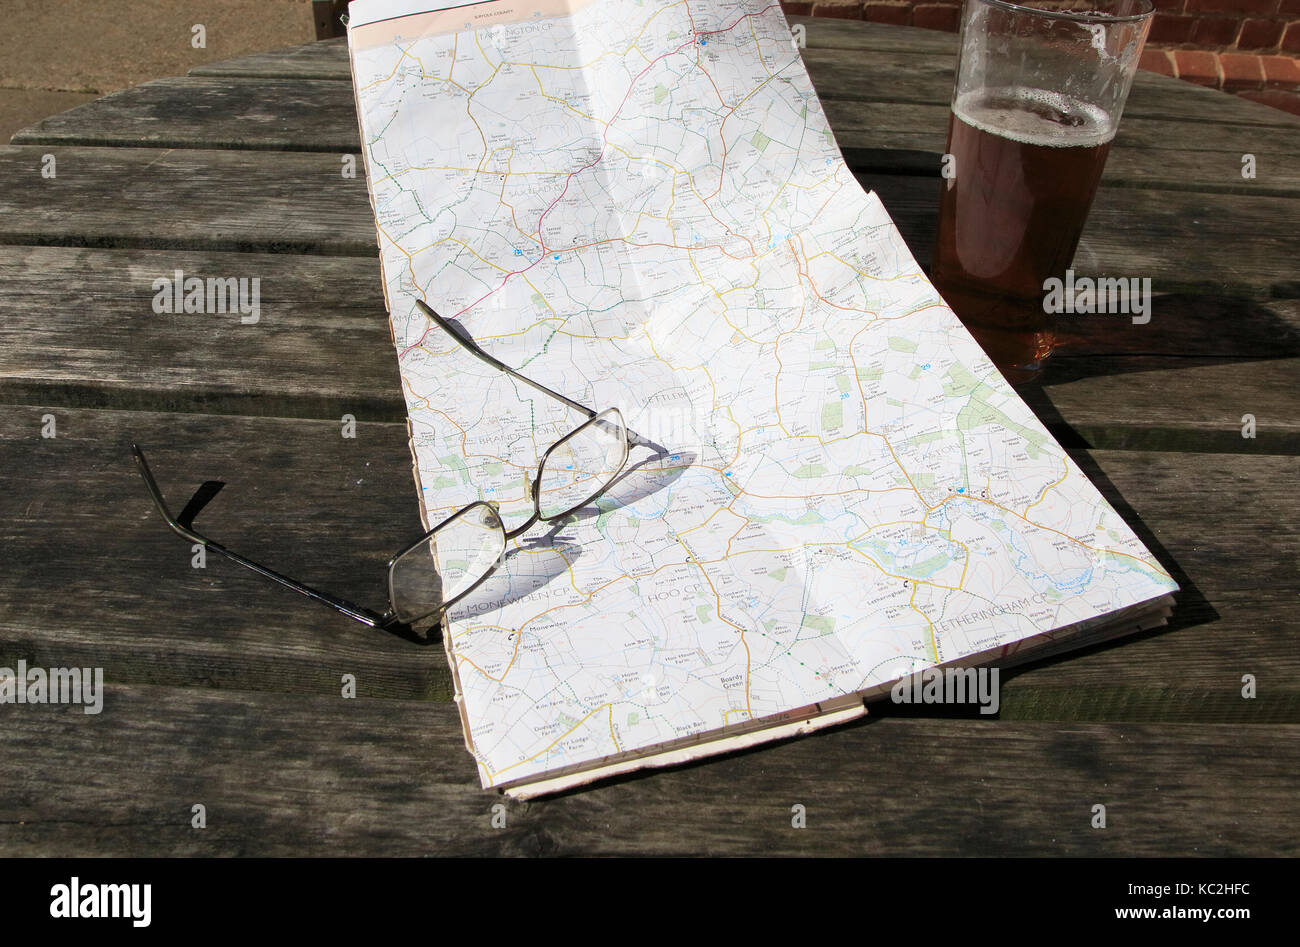 Ordnance Survey Explorer map opened on table with spectacles and pint glass of beer, Suffolk, England, UK - Stock Image